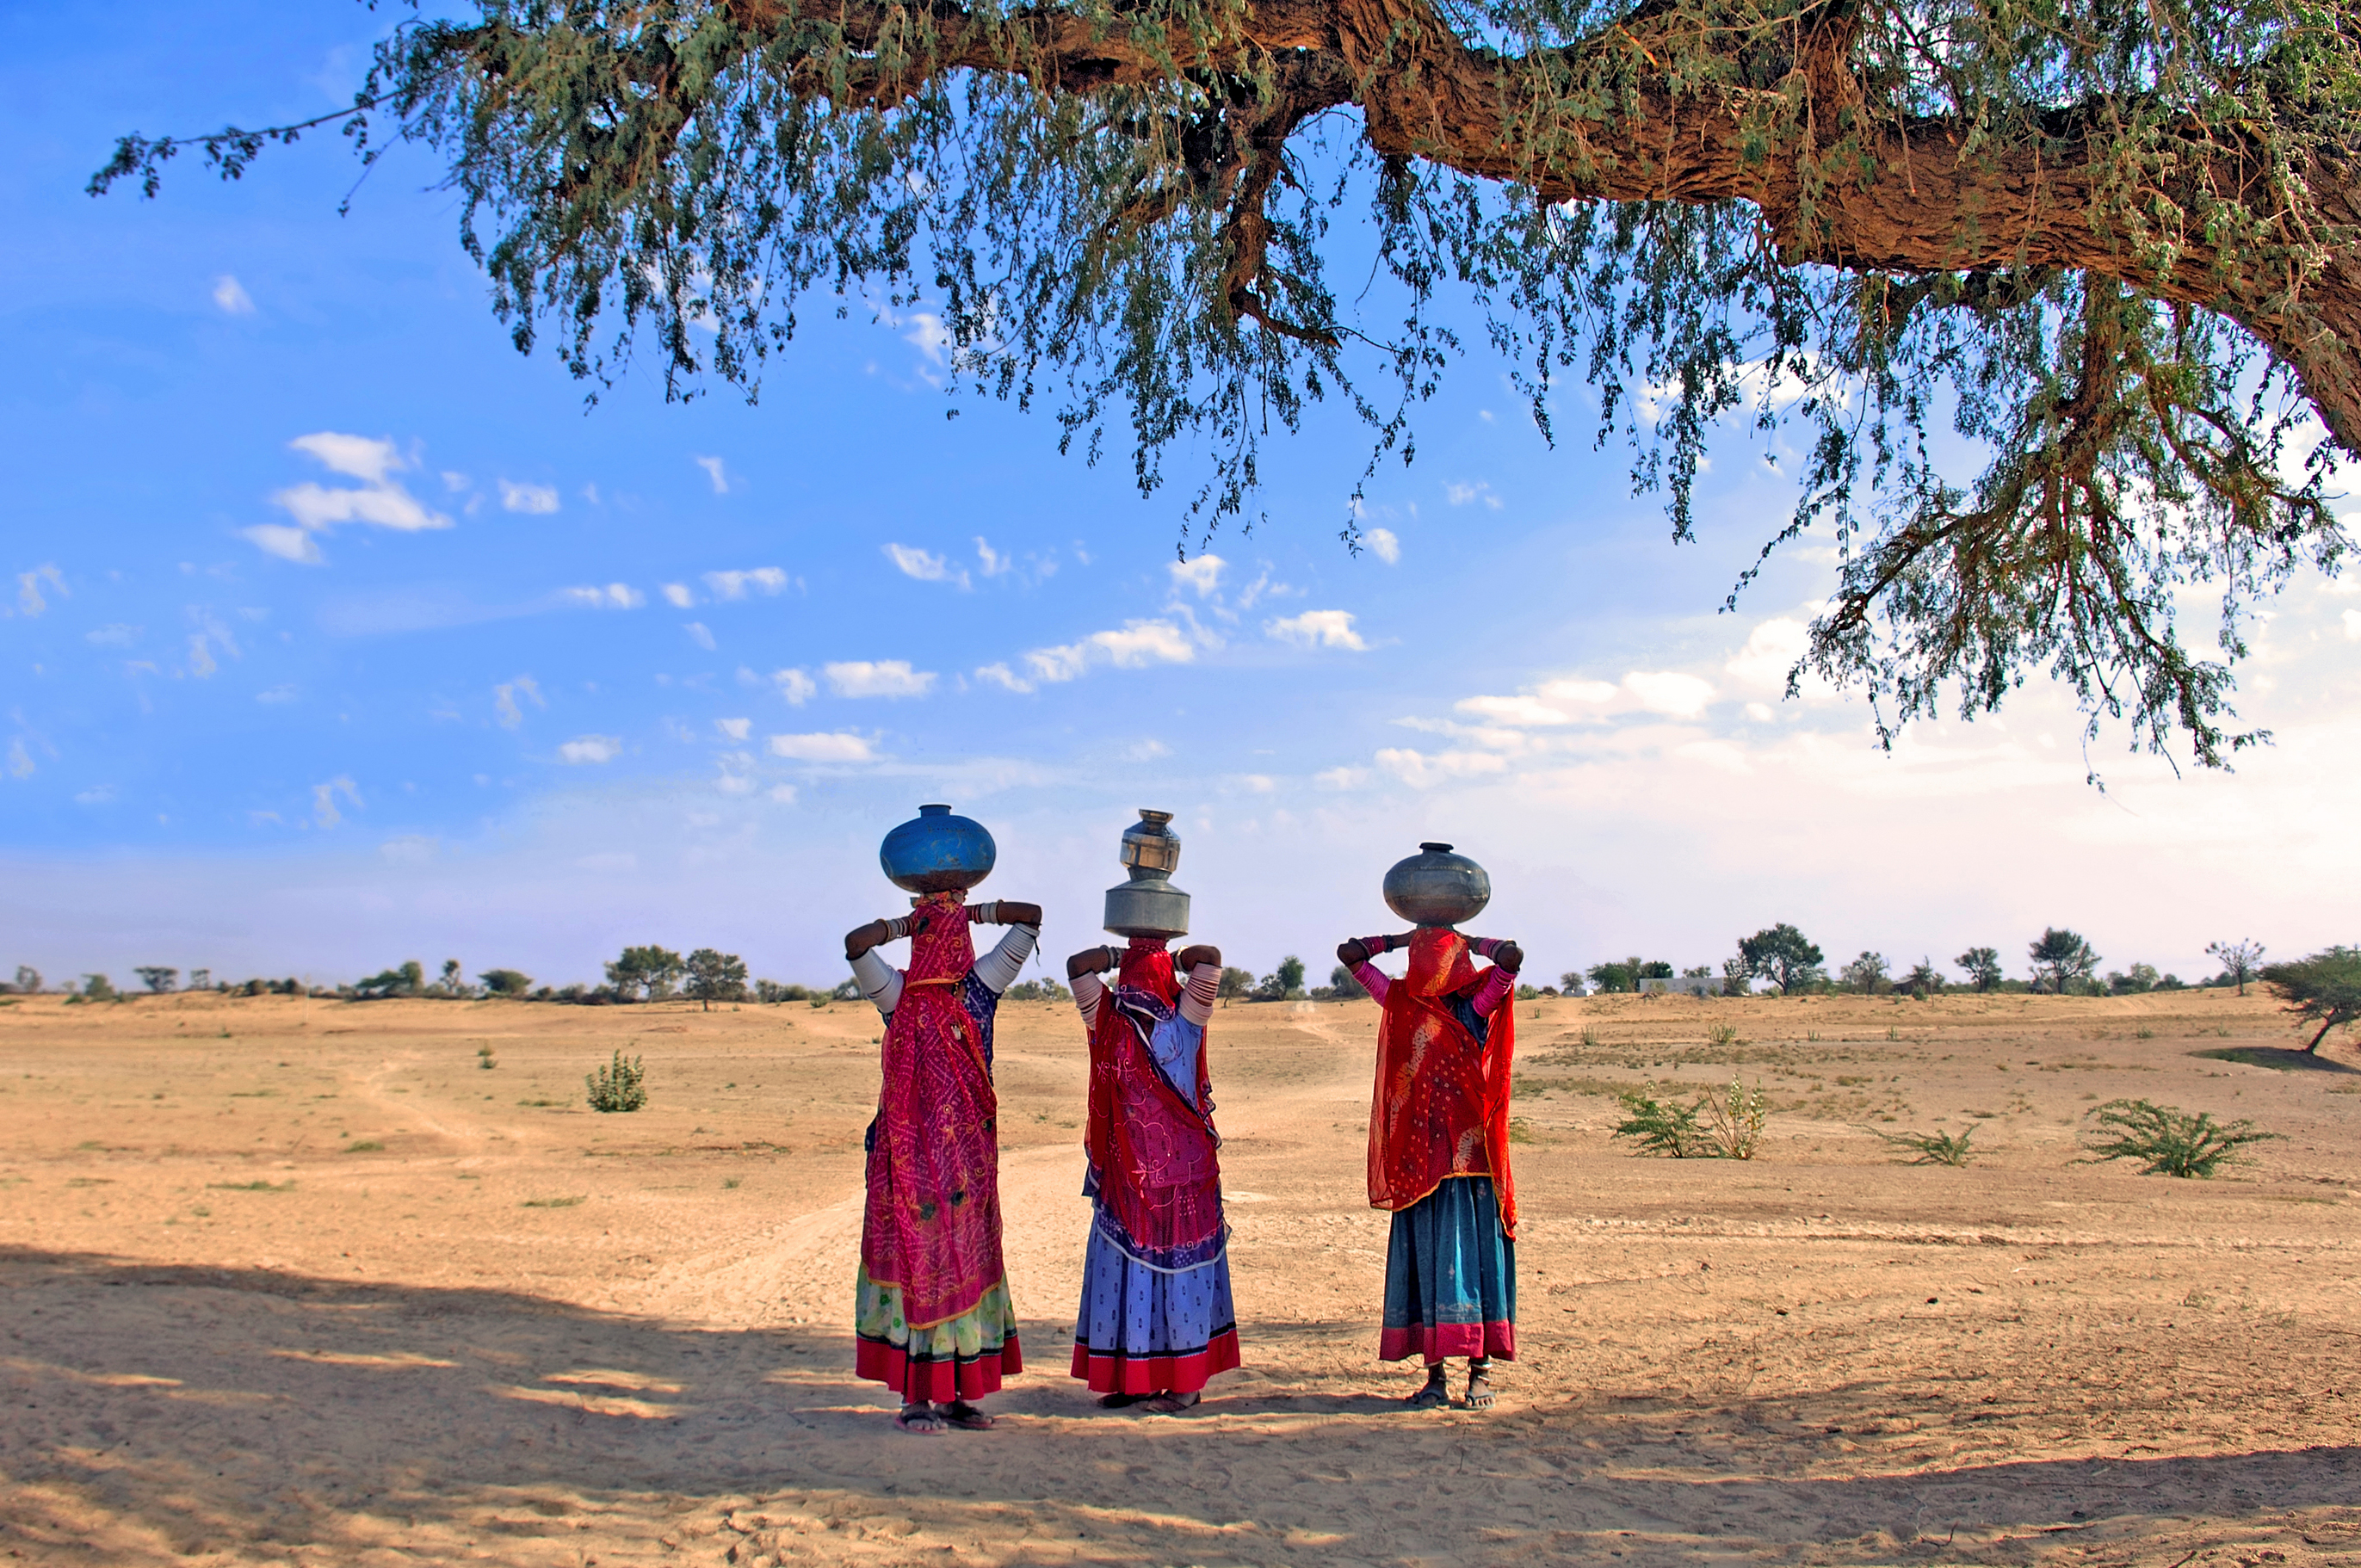 rajasthani village women fetching water from the sparse wells within rajasthan - desert cities